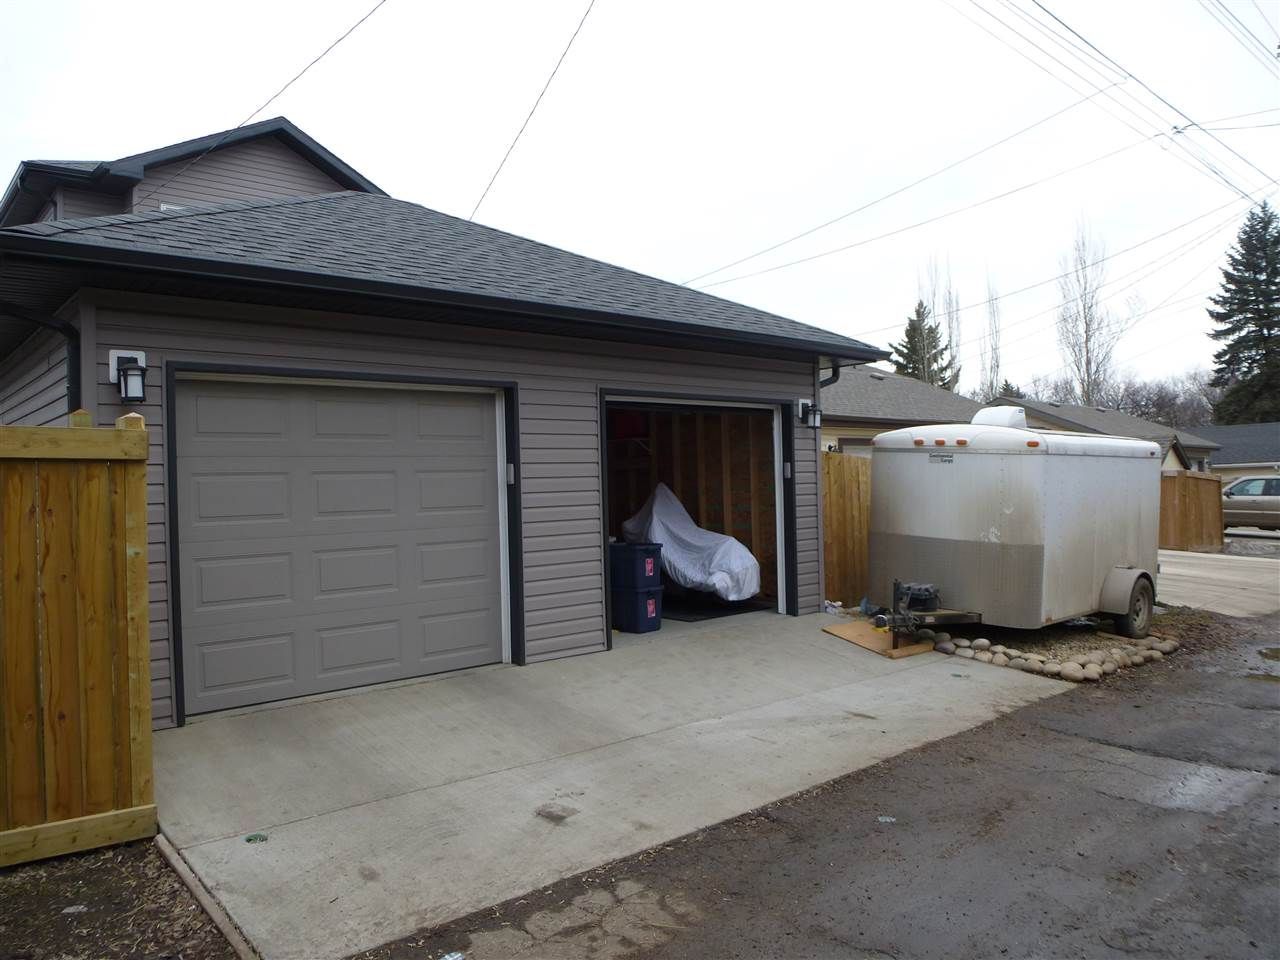 Photo 29: 14835 103 Avenue in Edmonton: Zone 21 House Half Duplex for sale : MLS(r) # E4057701